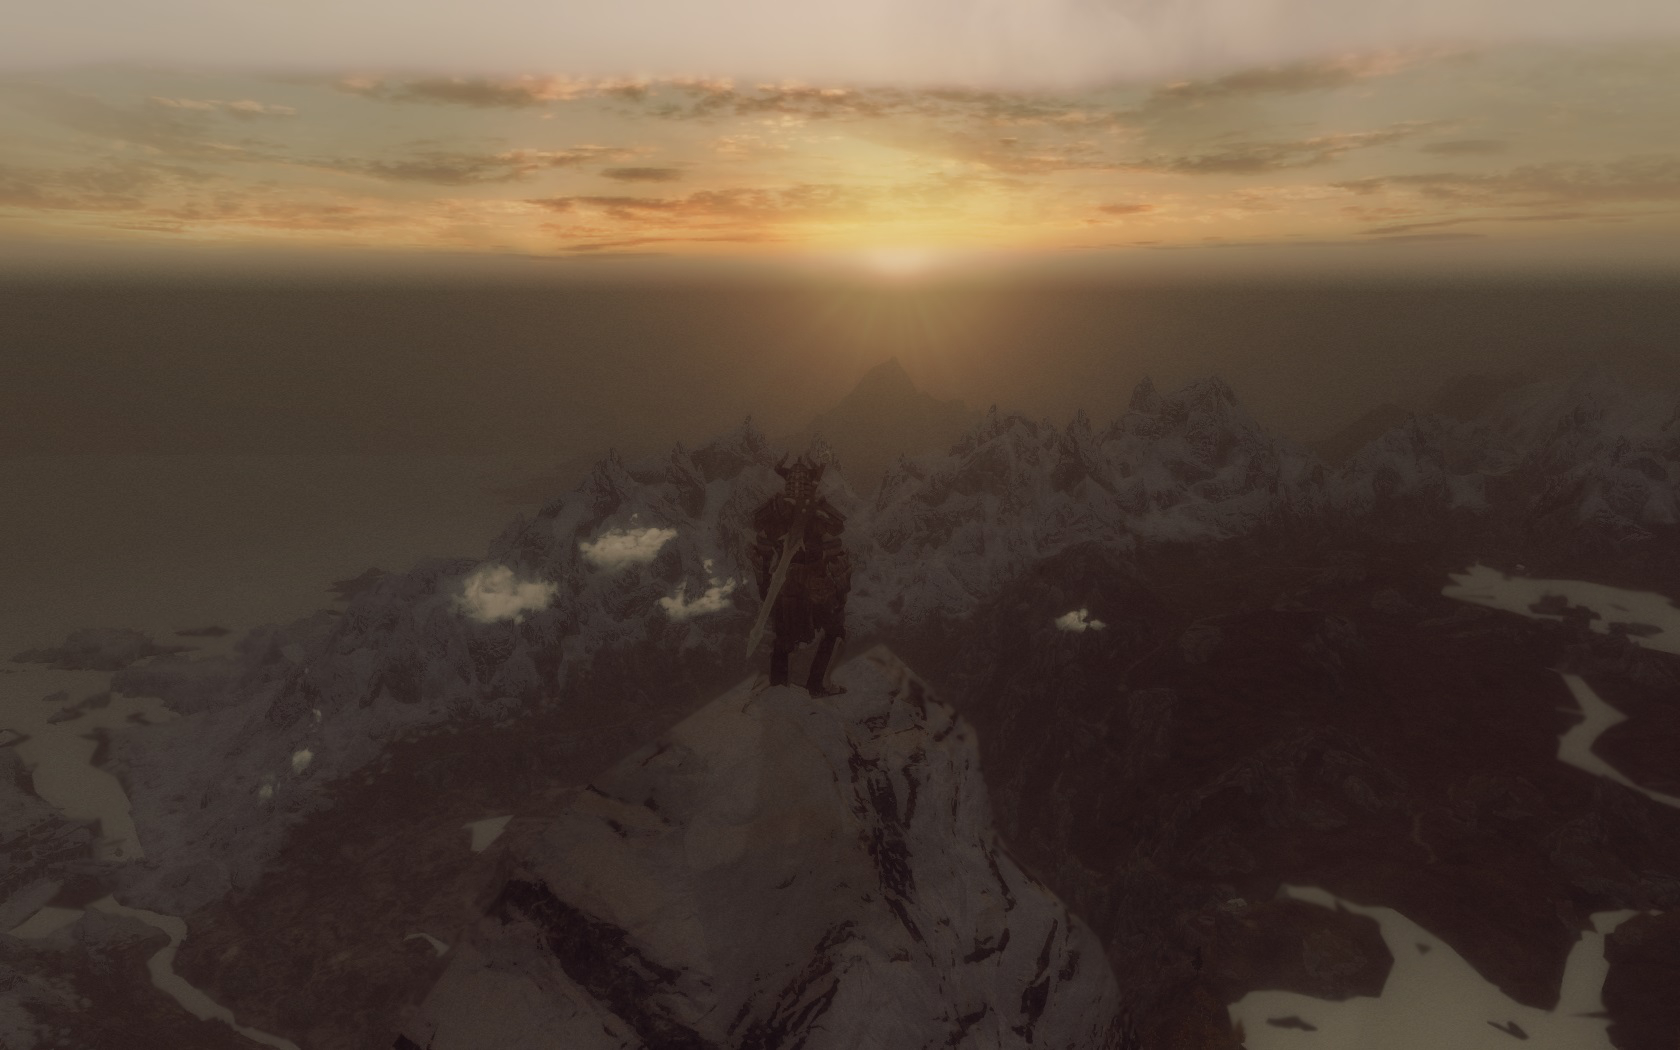 On top of Tamriel